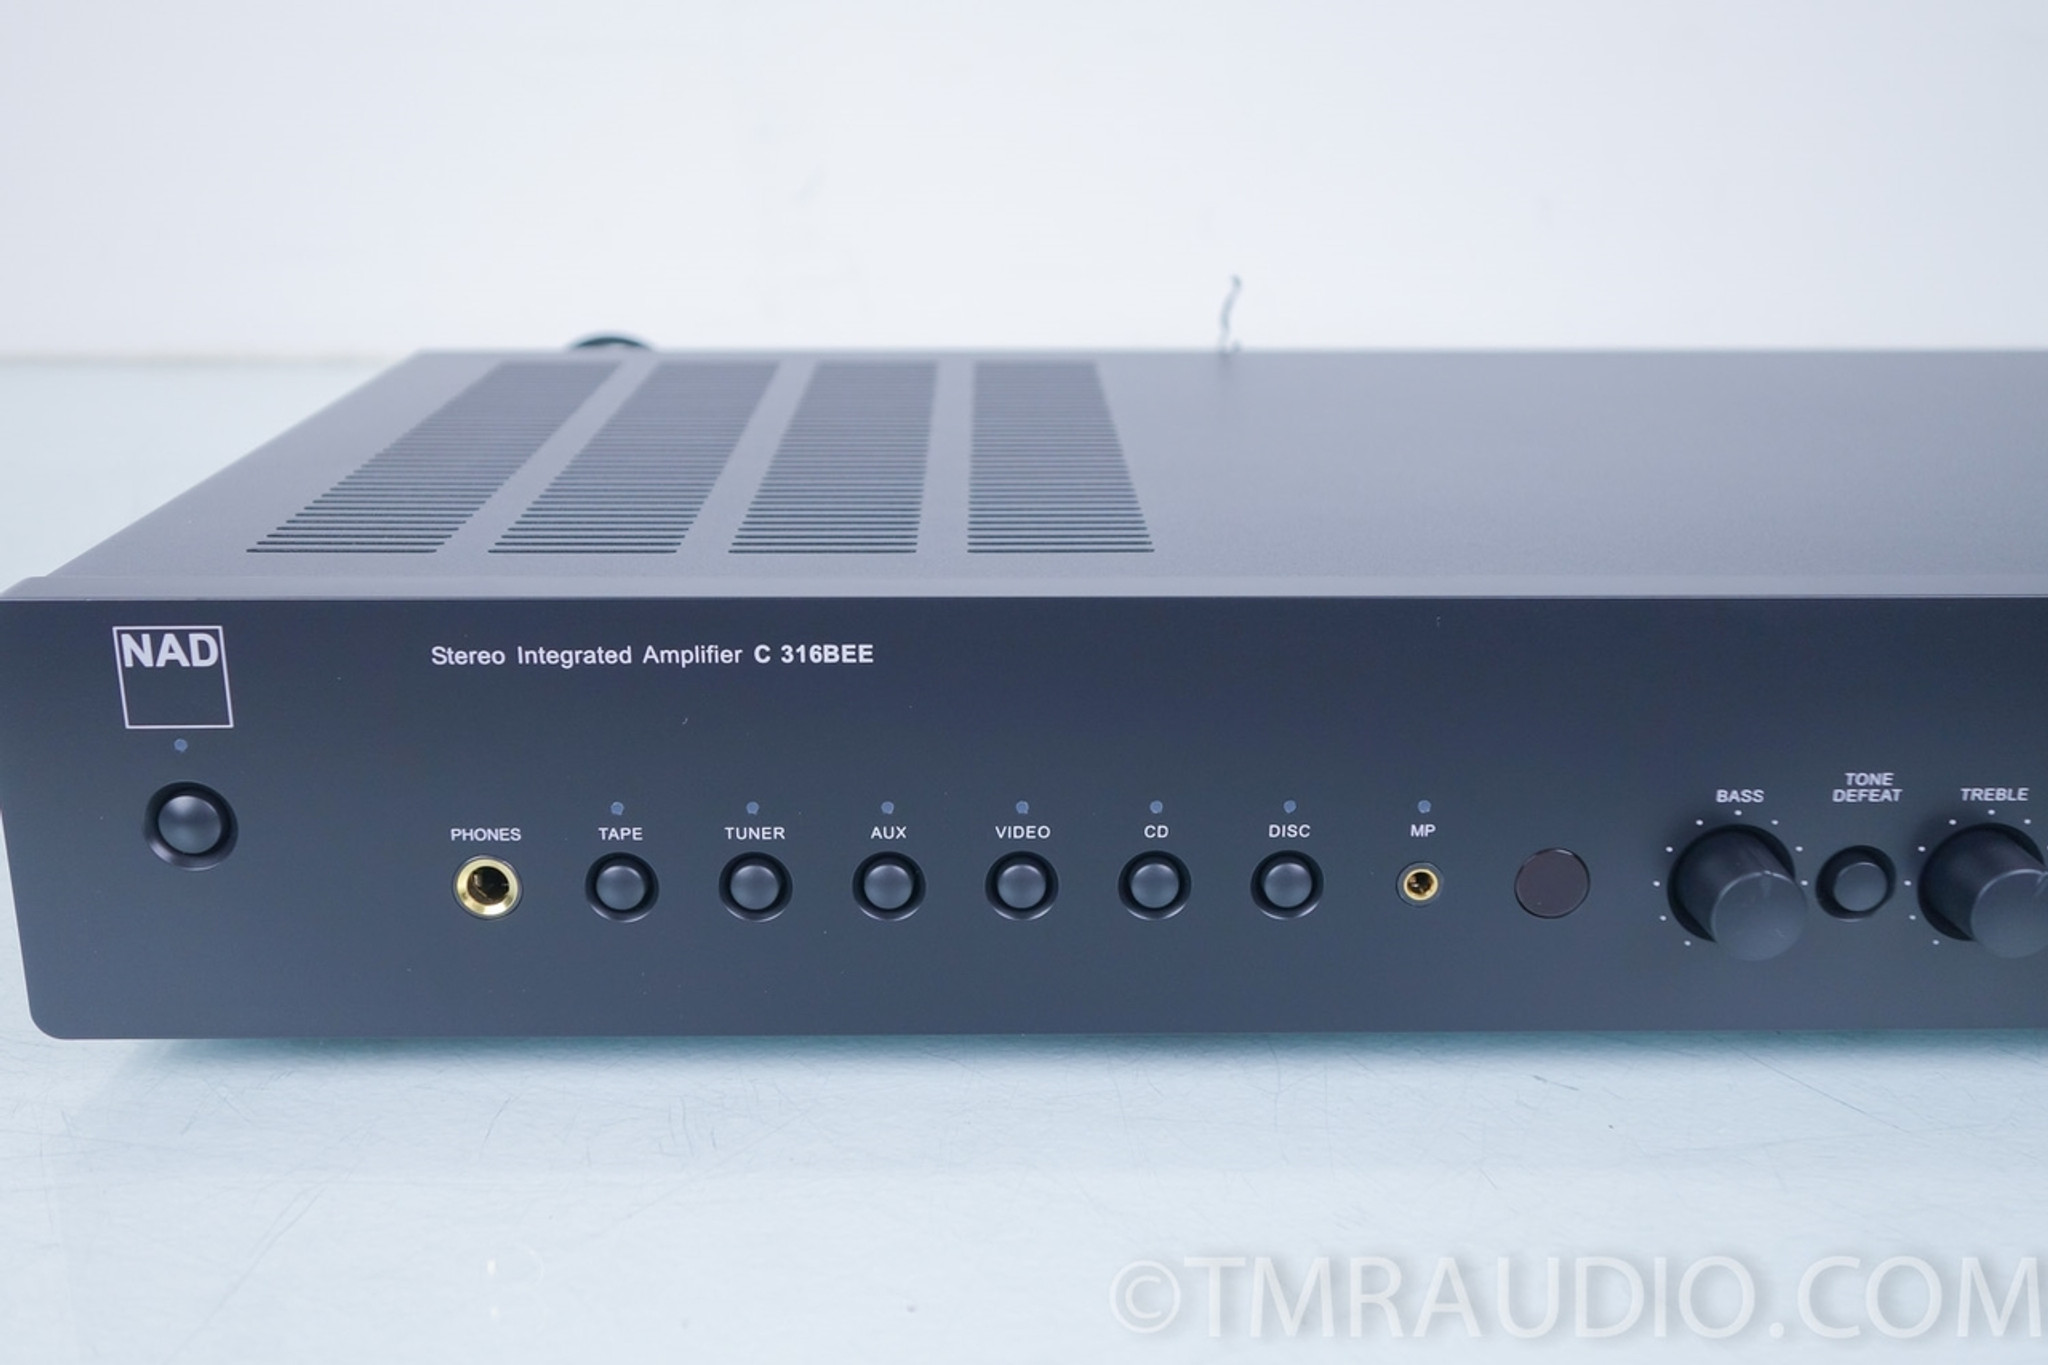 NAD C316BEE Stereo Integrated Amplifier in Factory Box